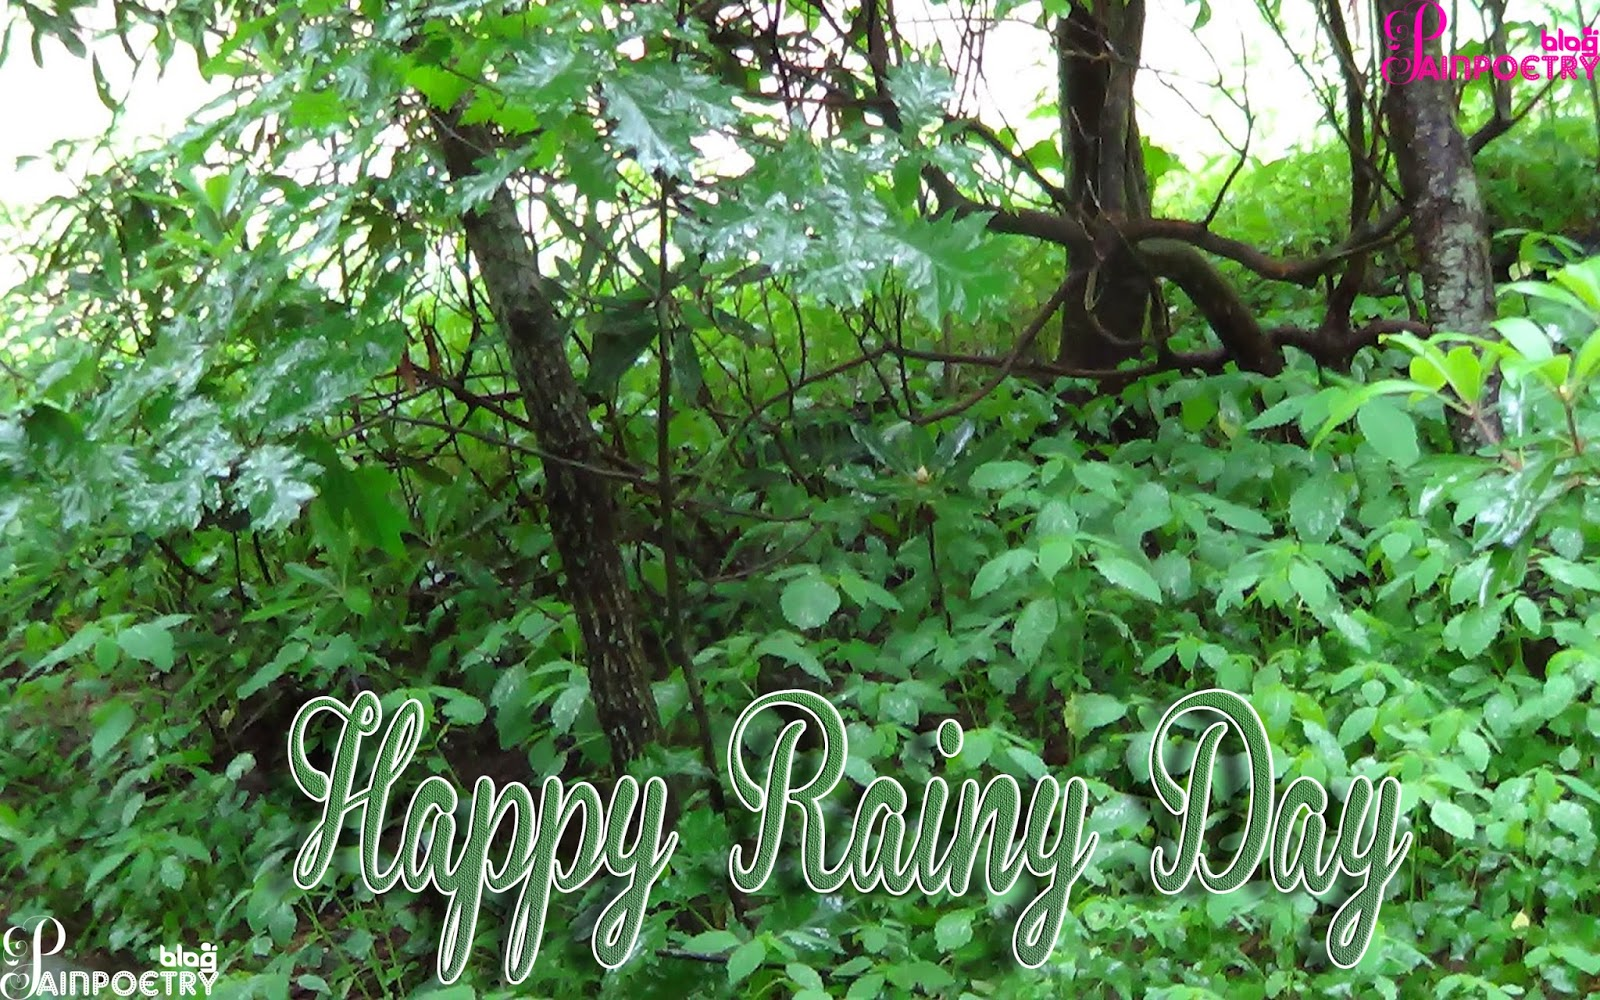 Happy-Rainy-Day-Happy-Mosam-Day-Image-Wallpaper-Wide